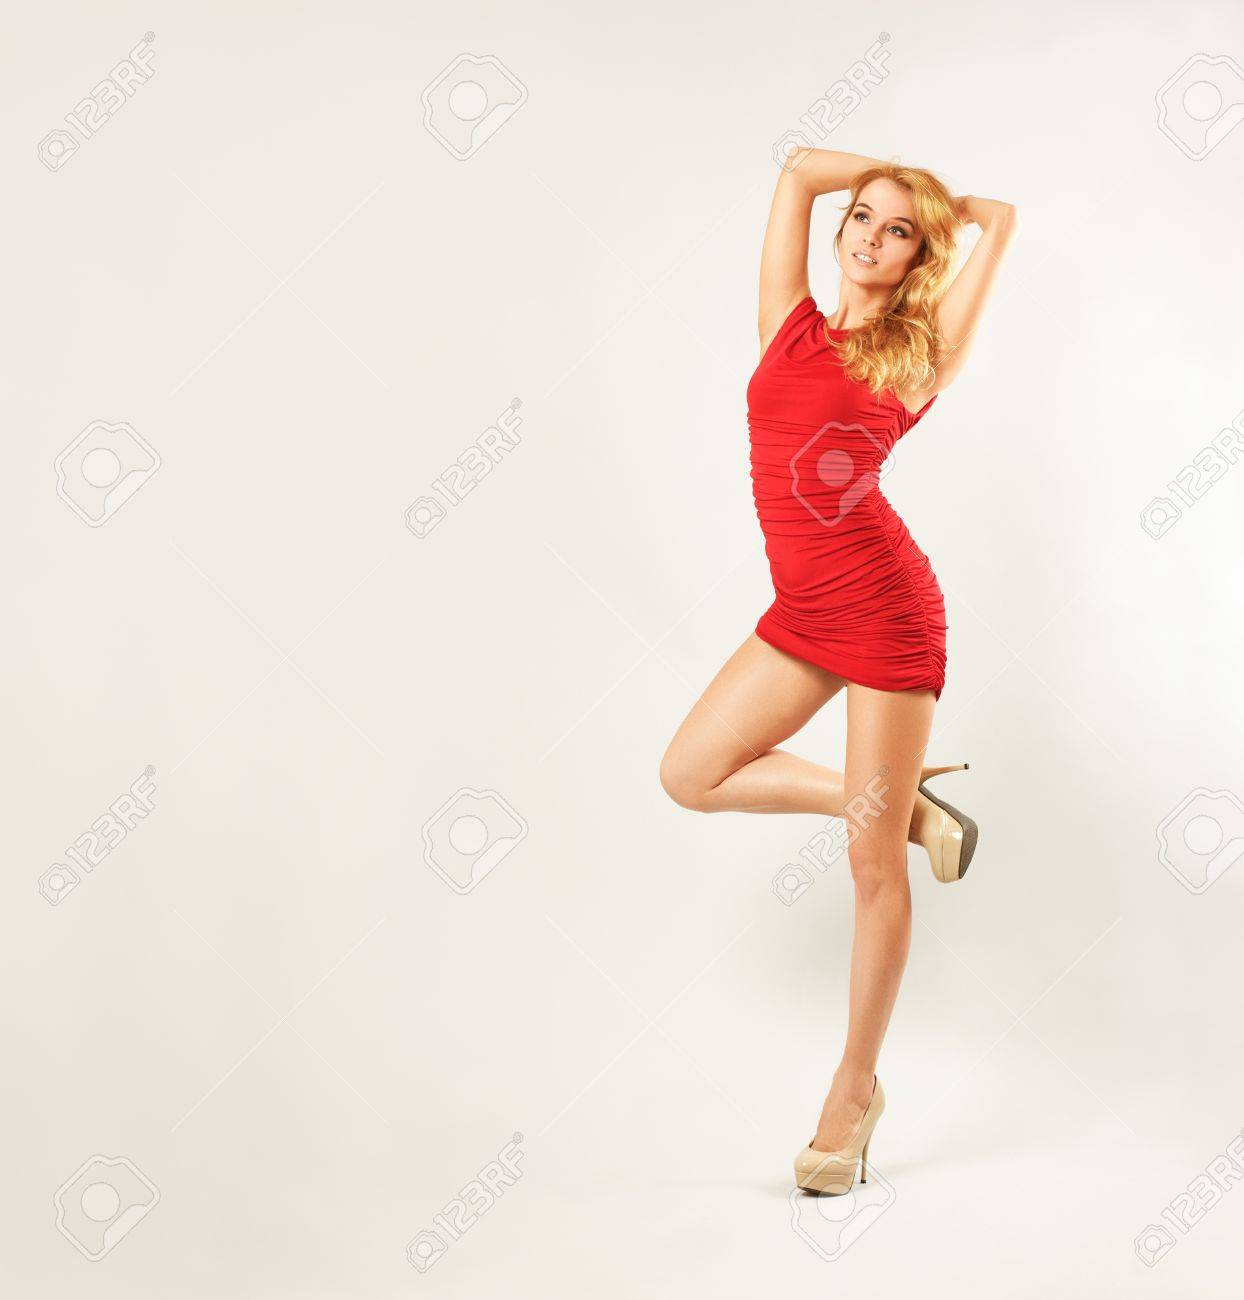 Full Length Portrait of a Sexy Blonde Woman in Red Fashion Dress Stock Photo - 17564214